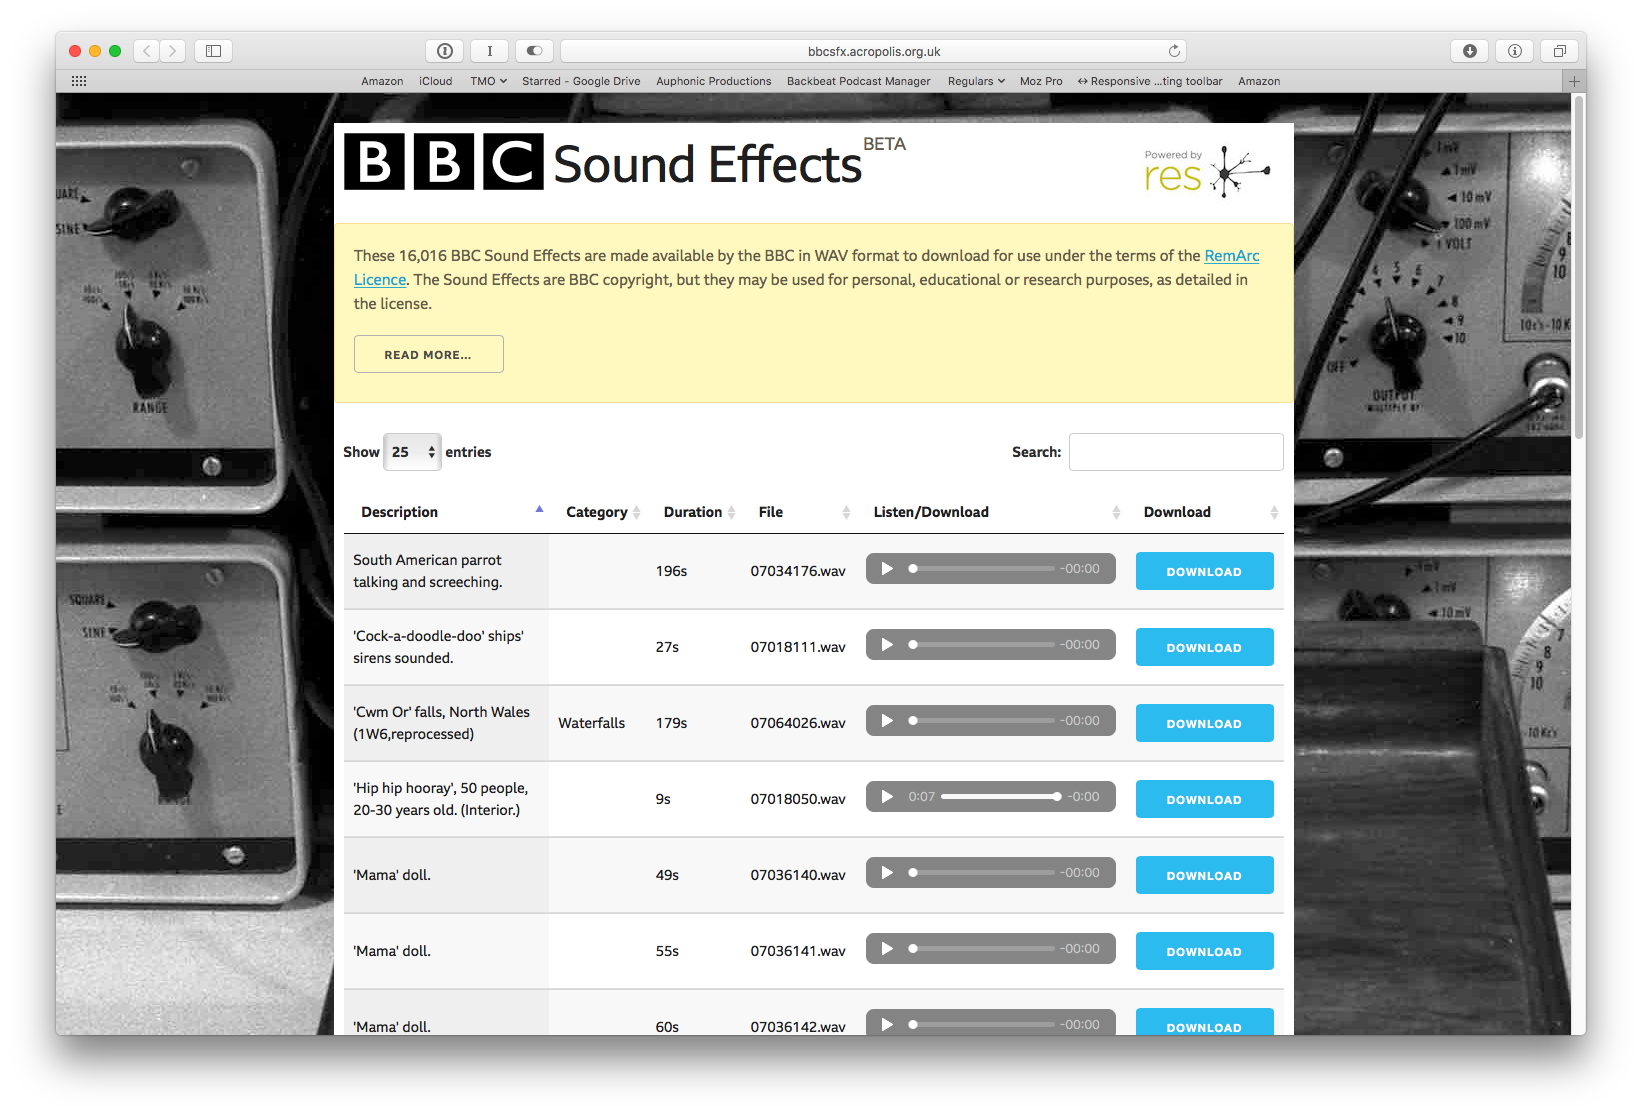 BBC Just Released 16,016 Sound Effects for Free